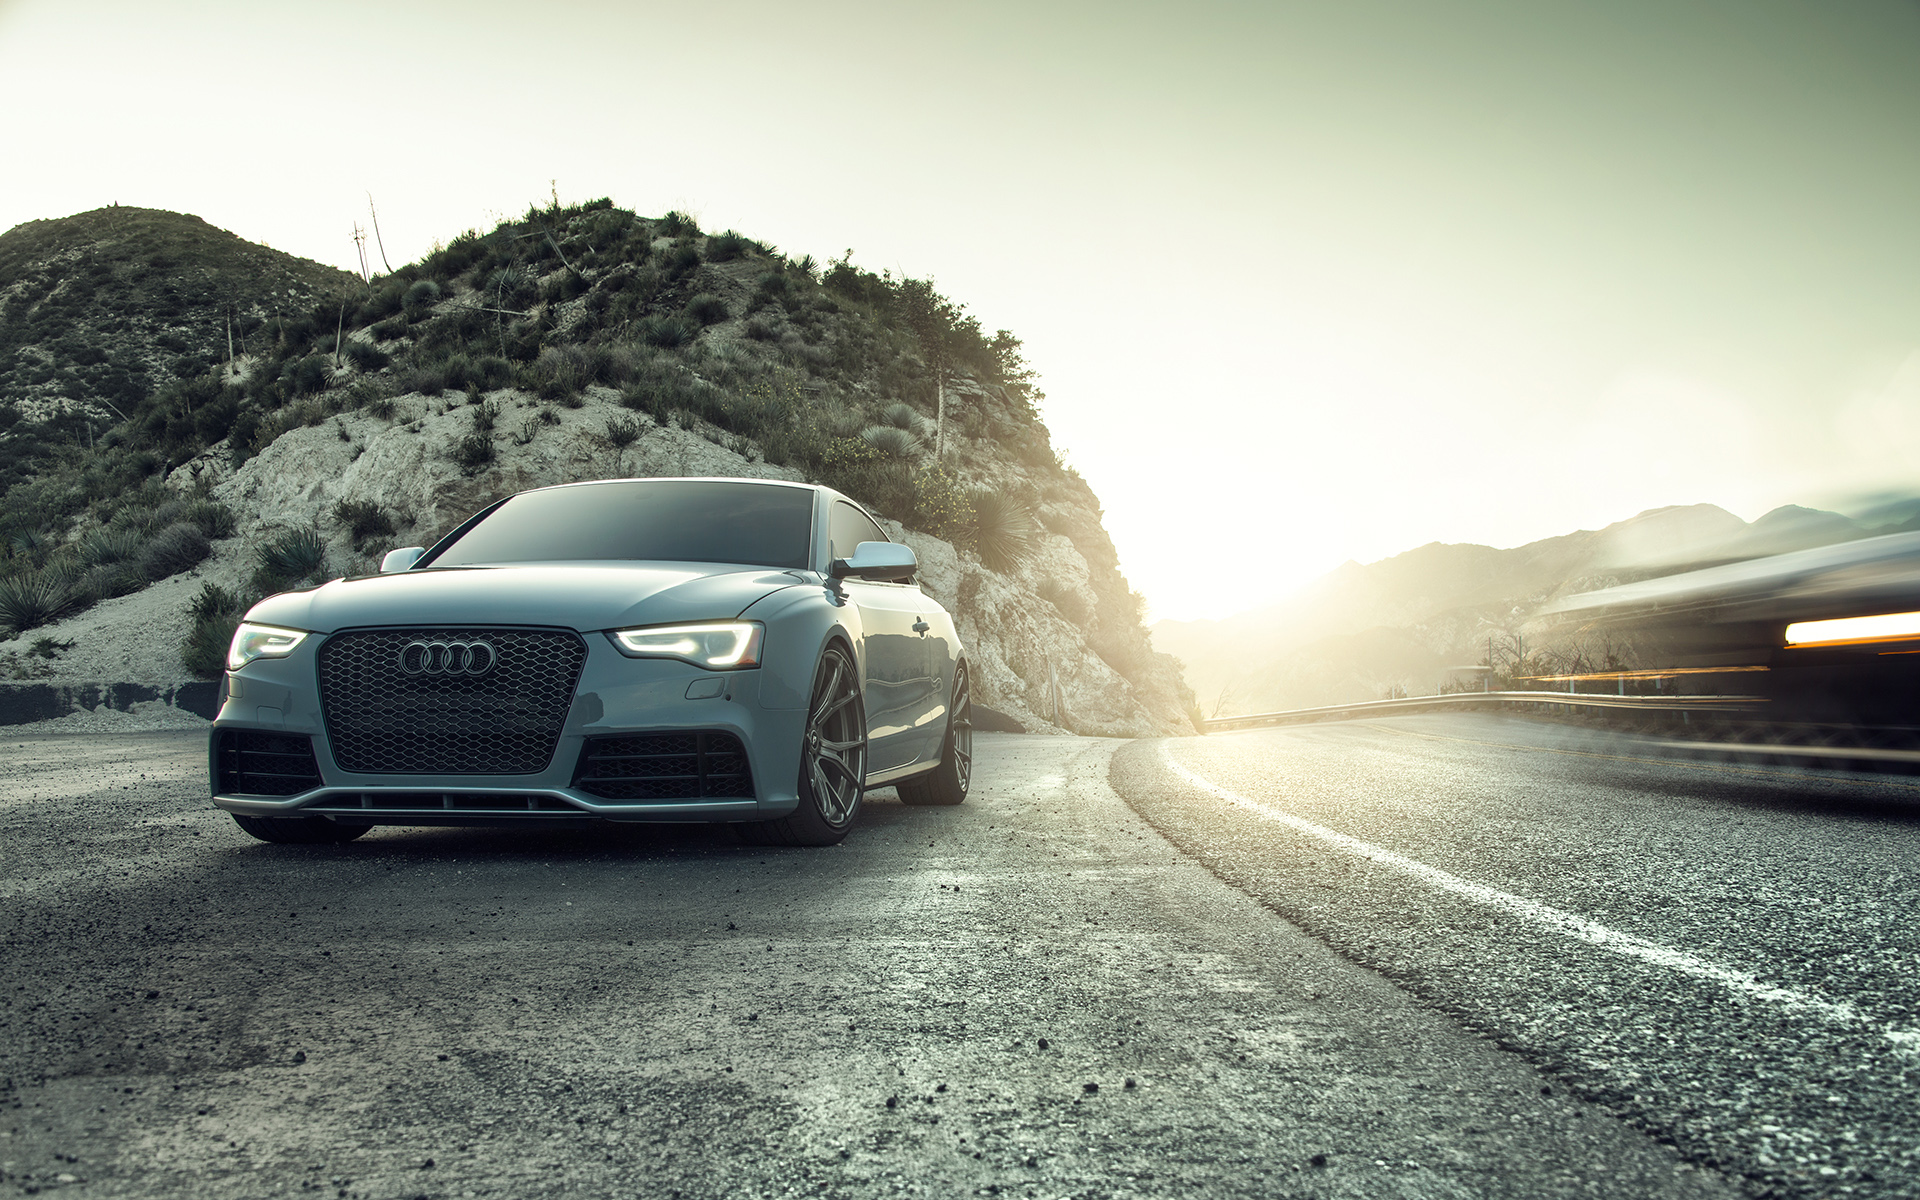 Vorsteiner Audi S5 A5 Series Wallpaper Hd Car Wallpapers